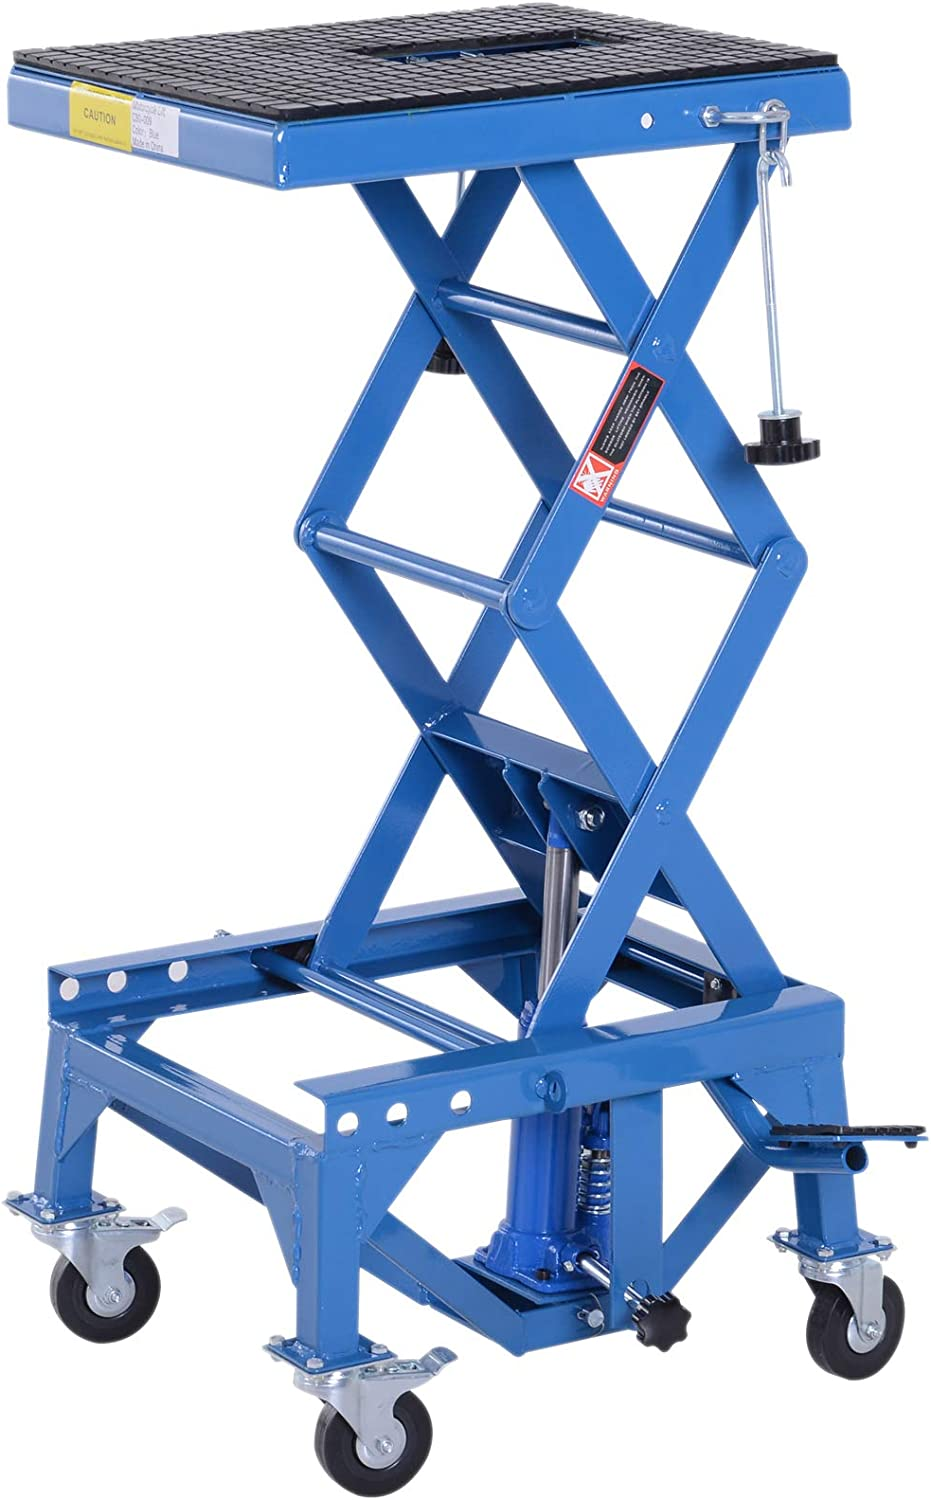 DURHAND 300 lbs Hydraulic Motorcycle Lift Foot Sales Branded goods of SALE items from new works Step Scissor Jack